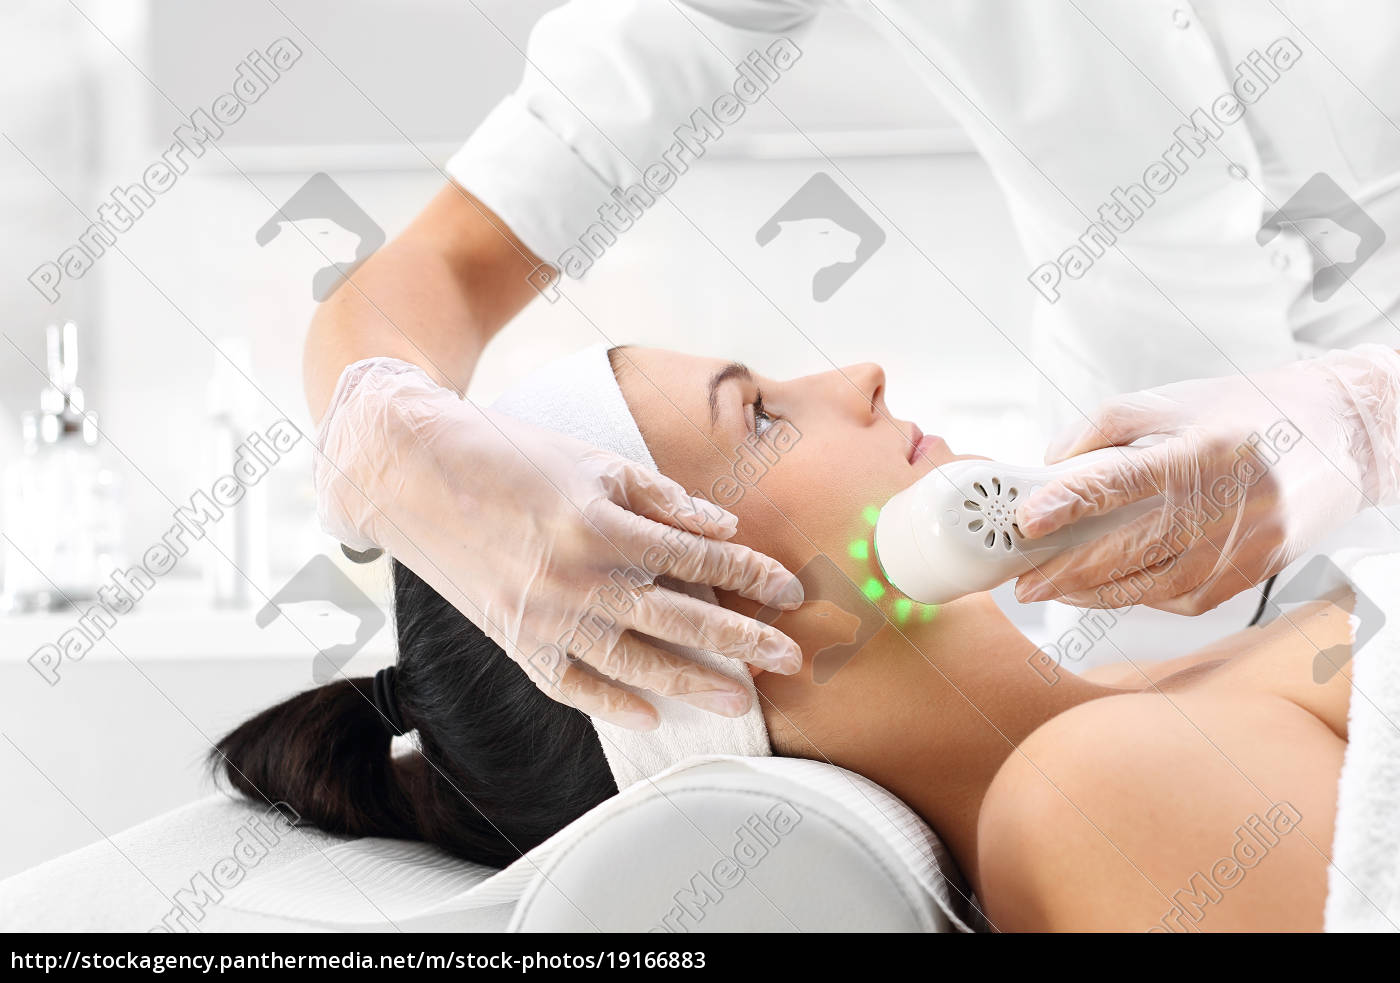 ultrasound, infrared, light, facial, treatment - 19166883